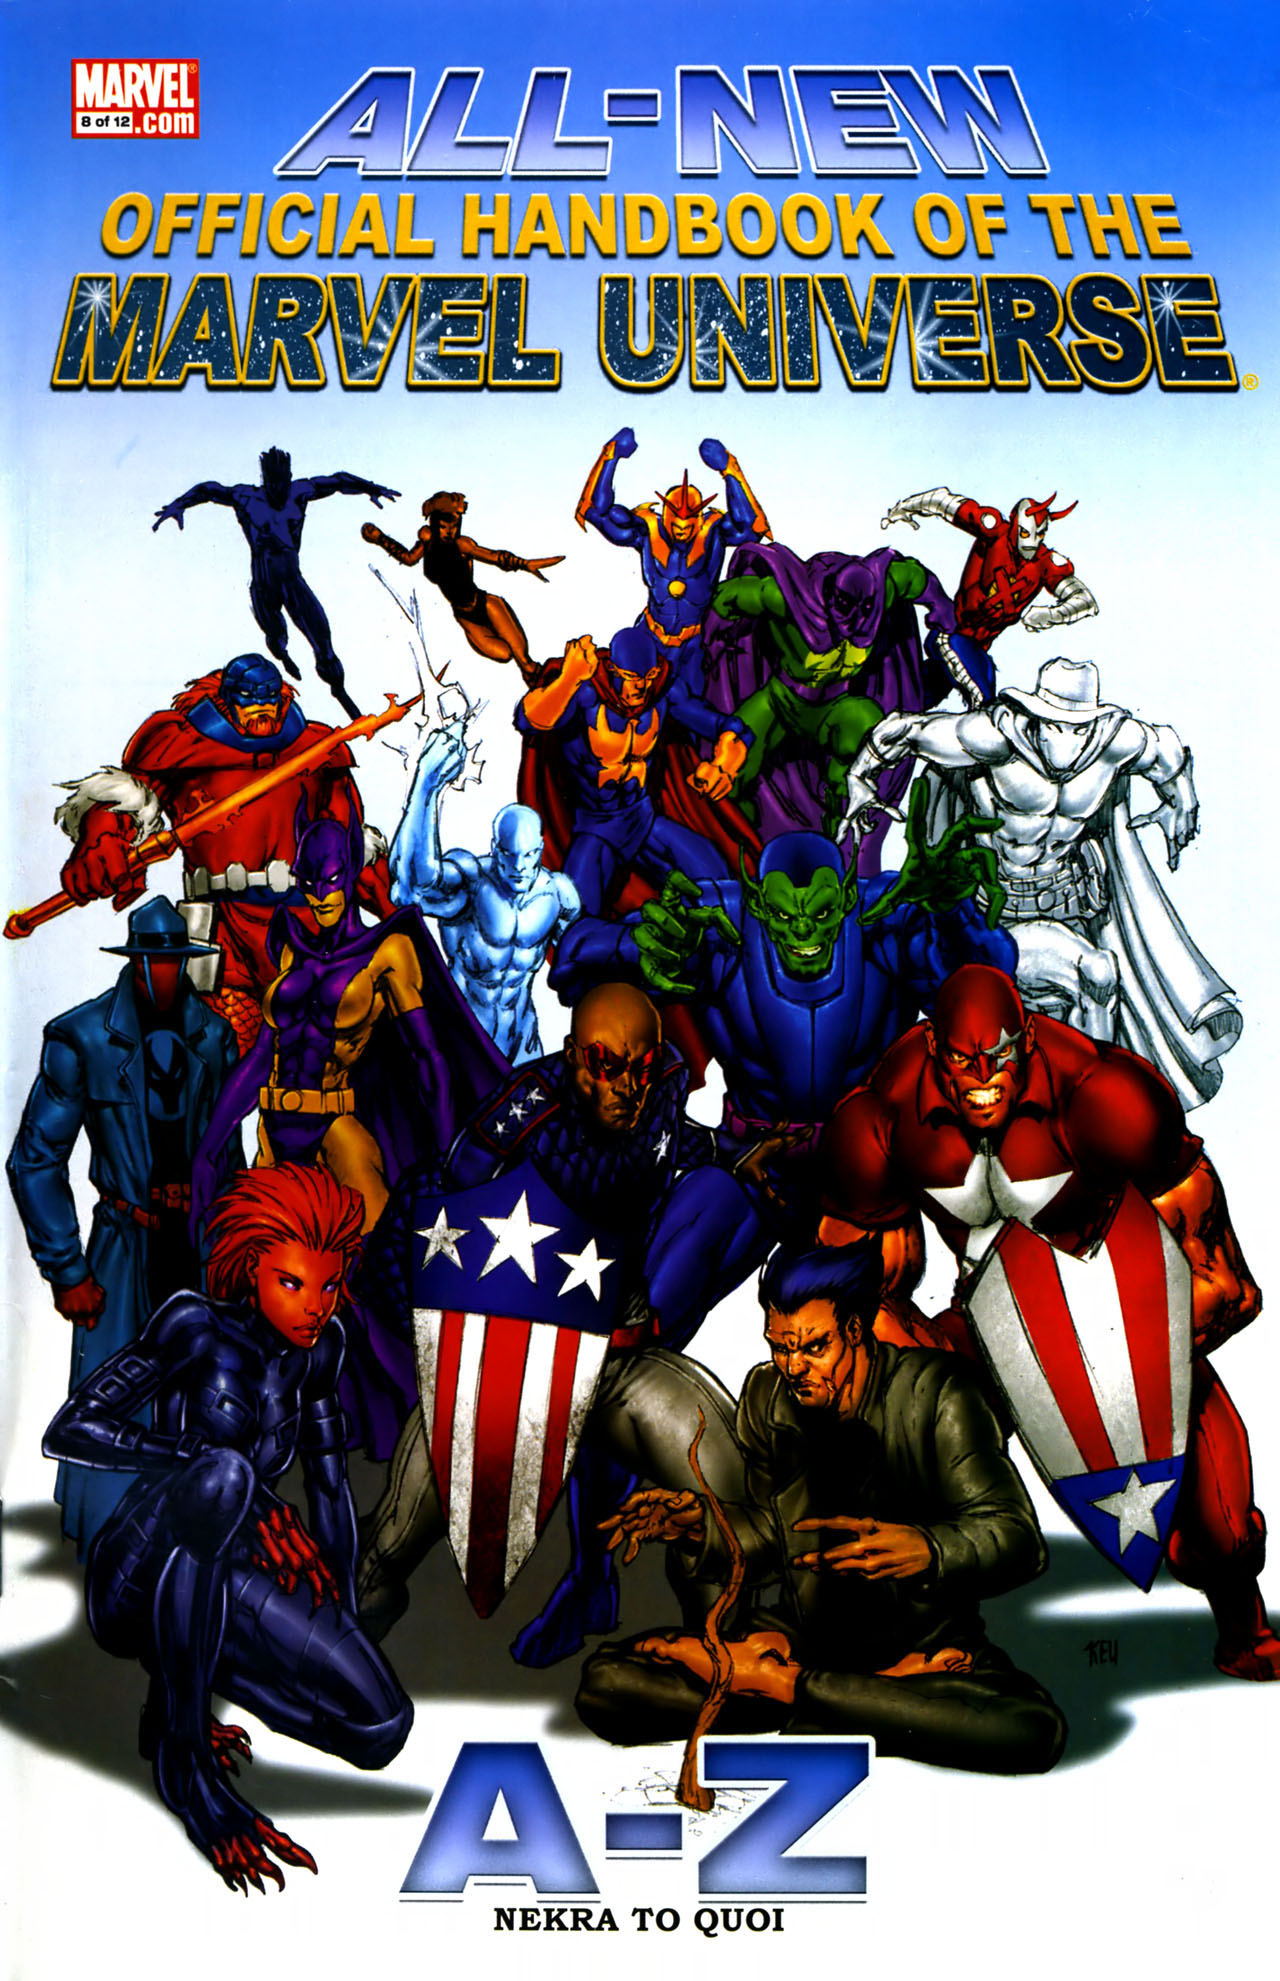 All-New Official Handbook of the Marvel Universe A to Z 8 Page 1